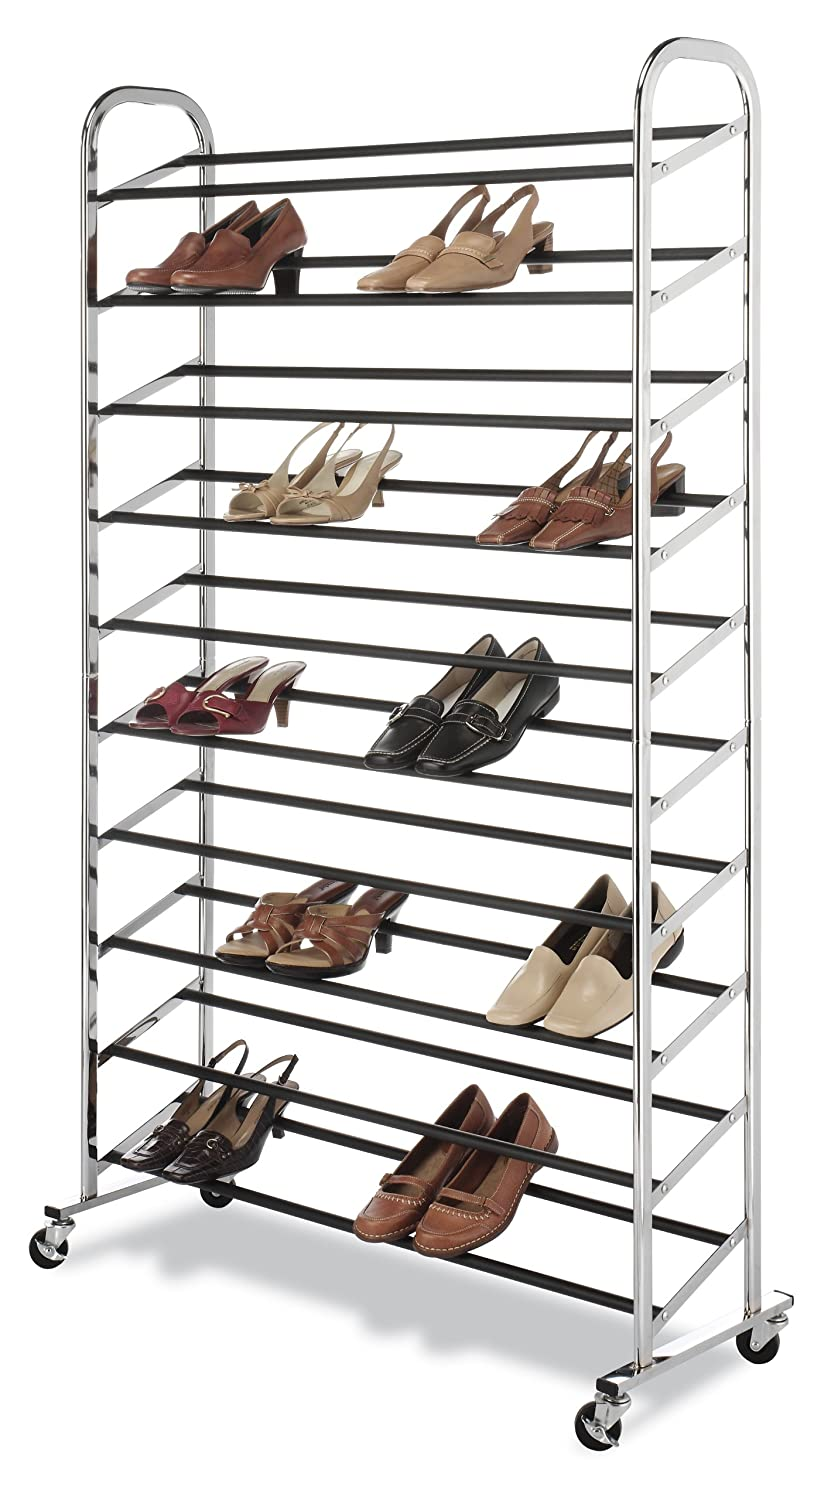 Closet shoe rack portable stand organizer chrome storage for Mueble zapatero amazon